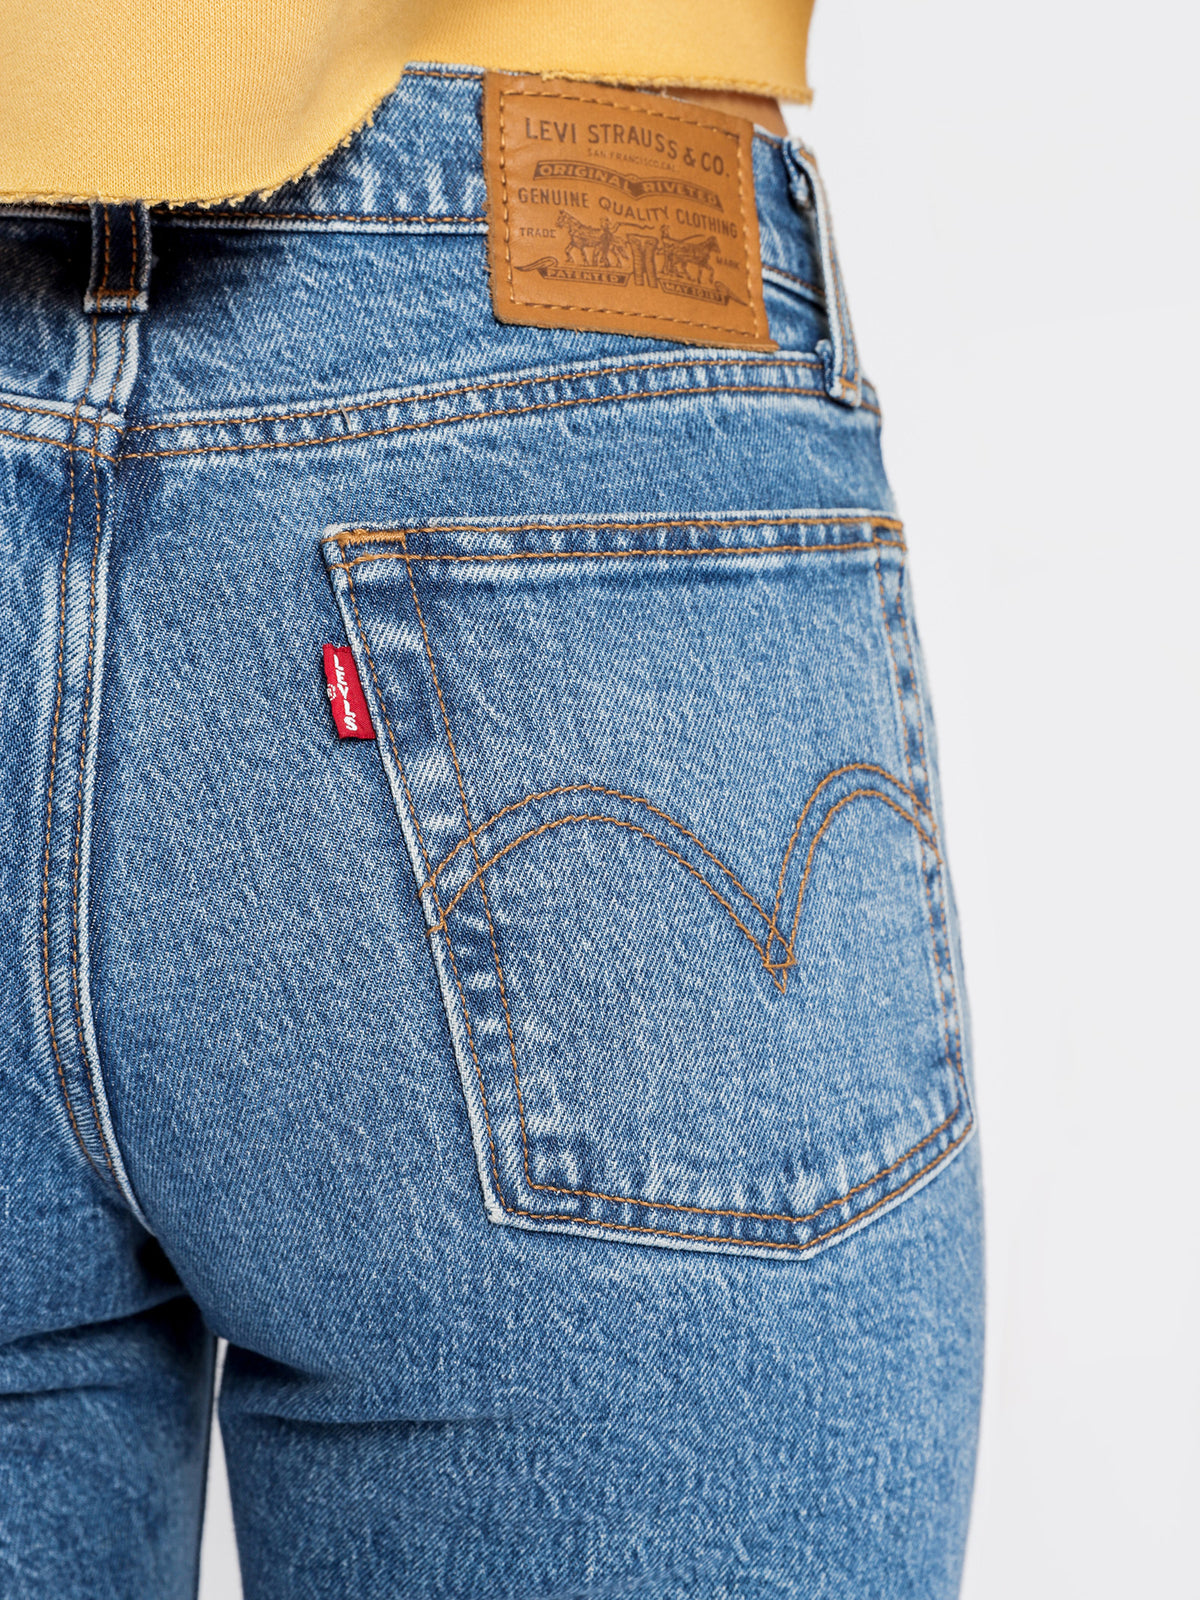 Wedgie Straight-Leg Jeans in Jive Sound Blue Denim